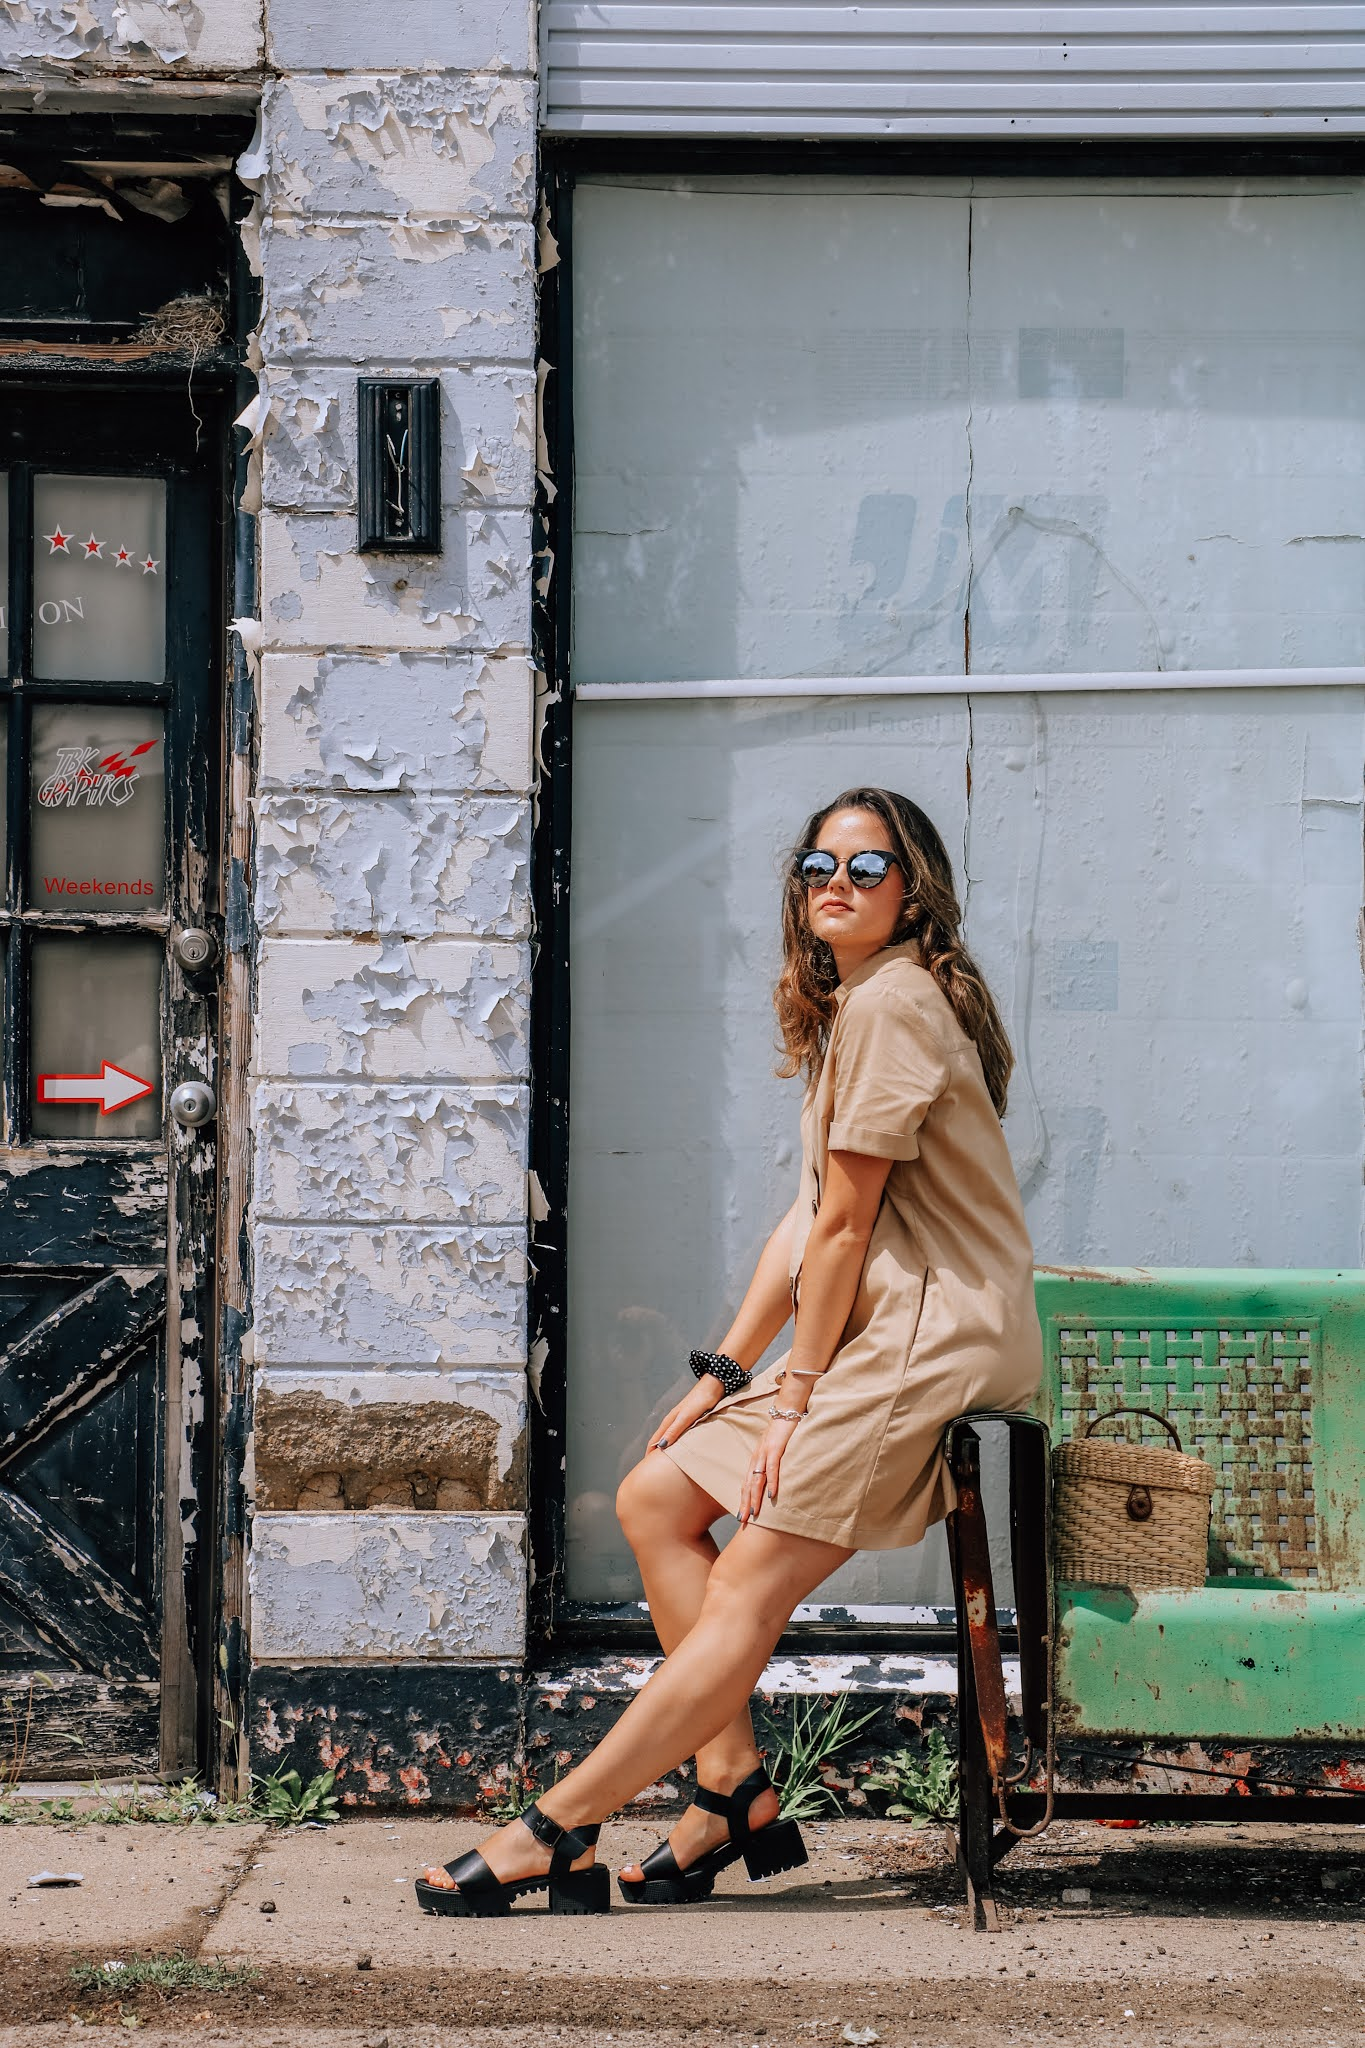 Fashion blogger Kathleen Harper doing an outdoor photo shoot at a bus stop in fall 2020.